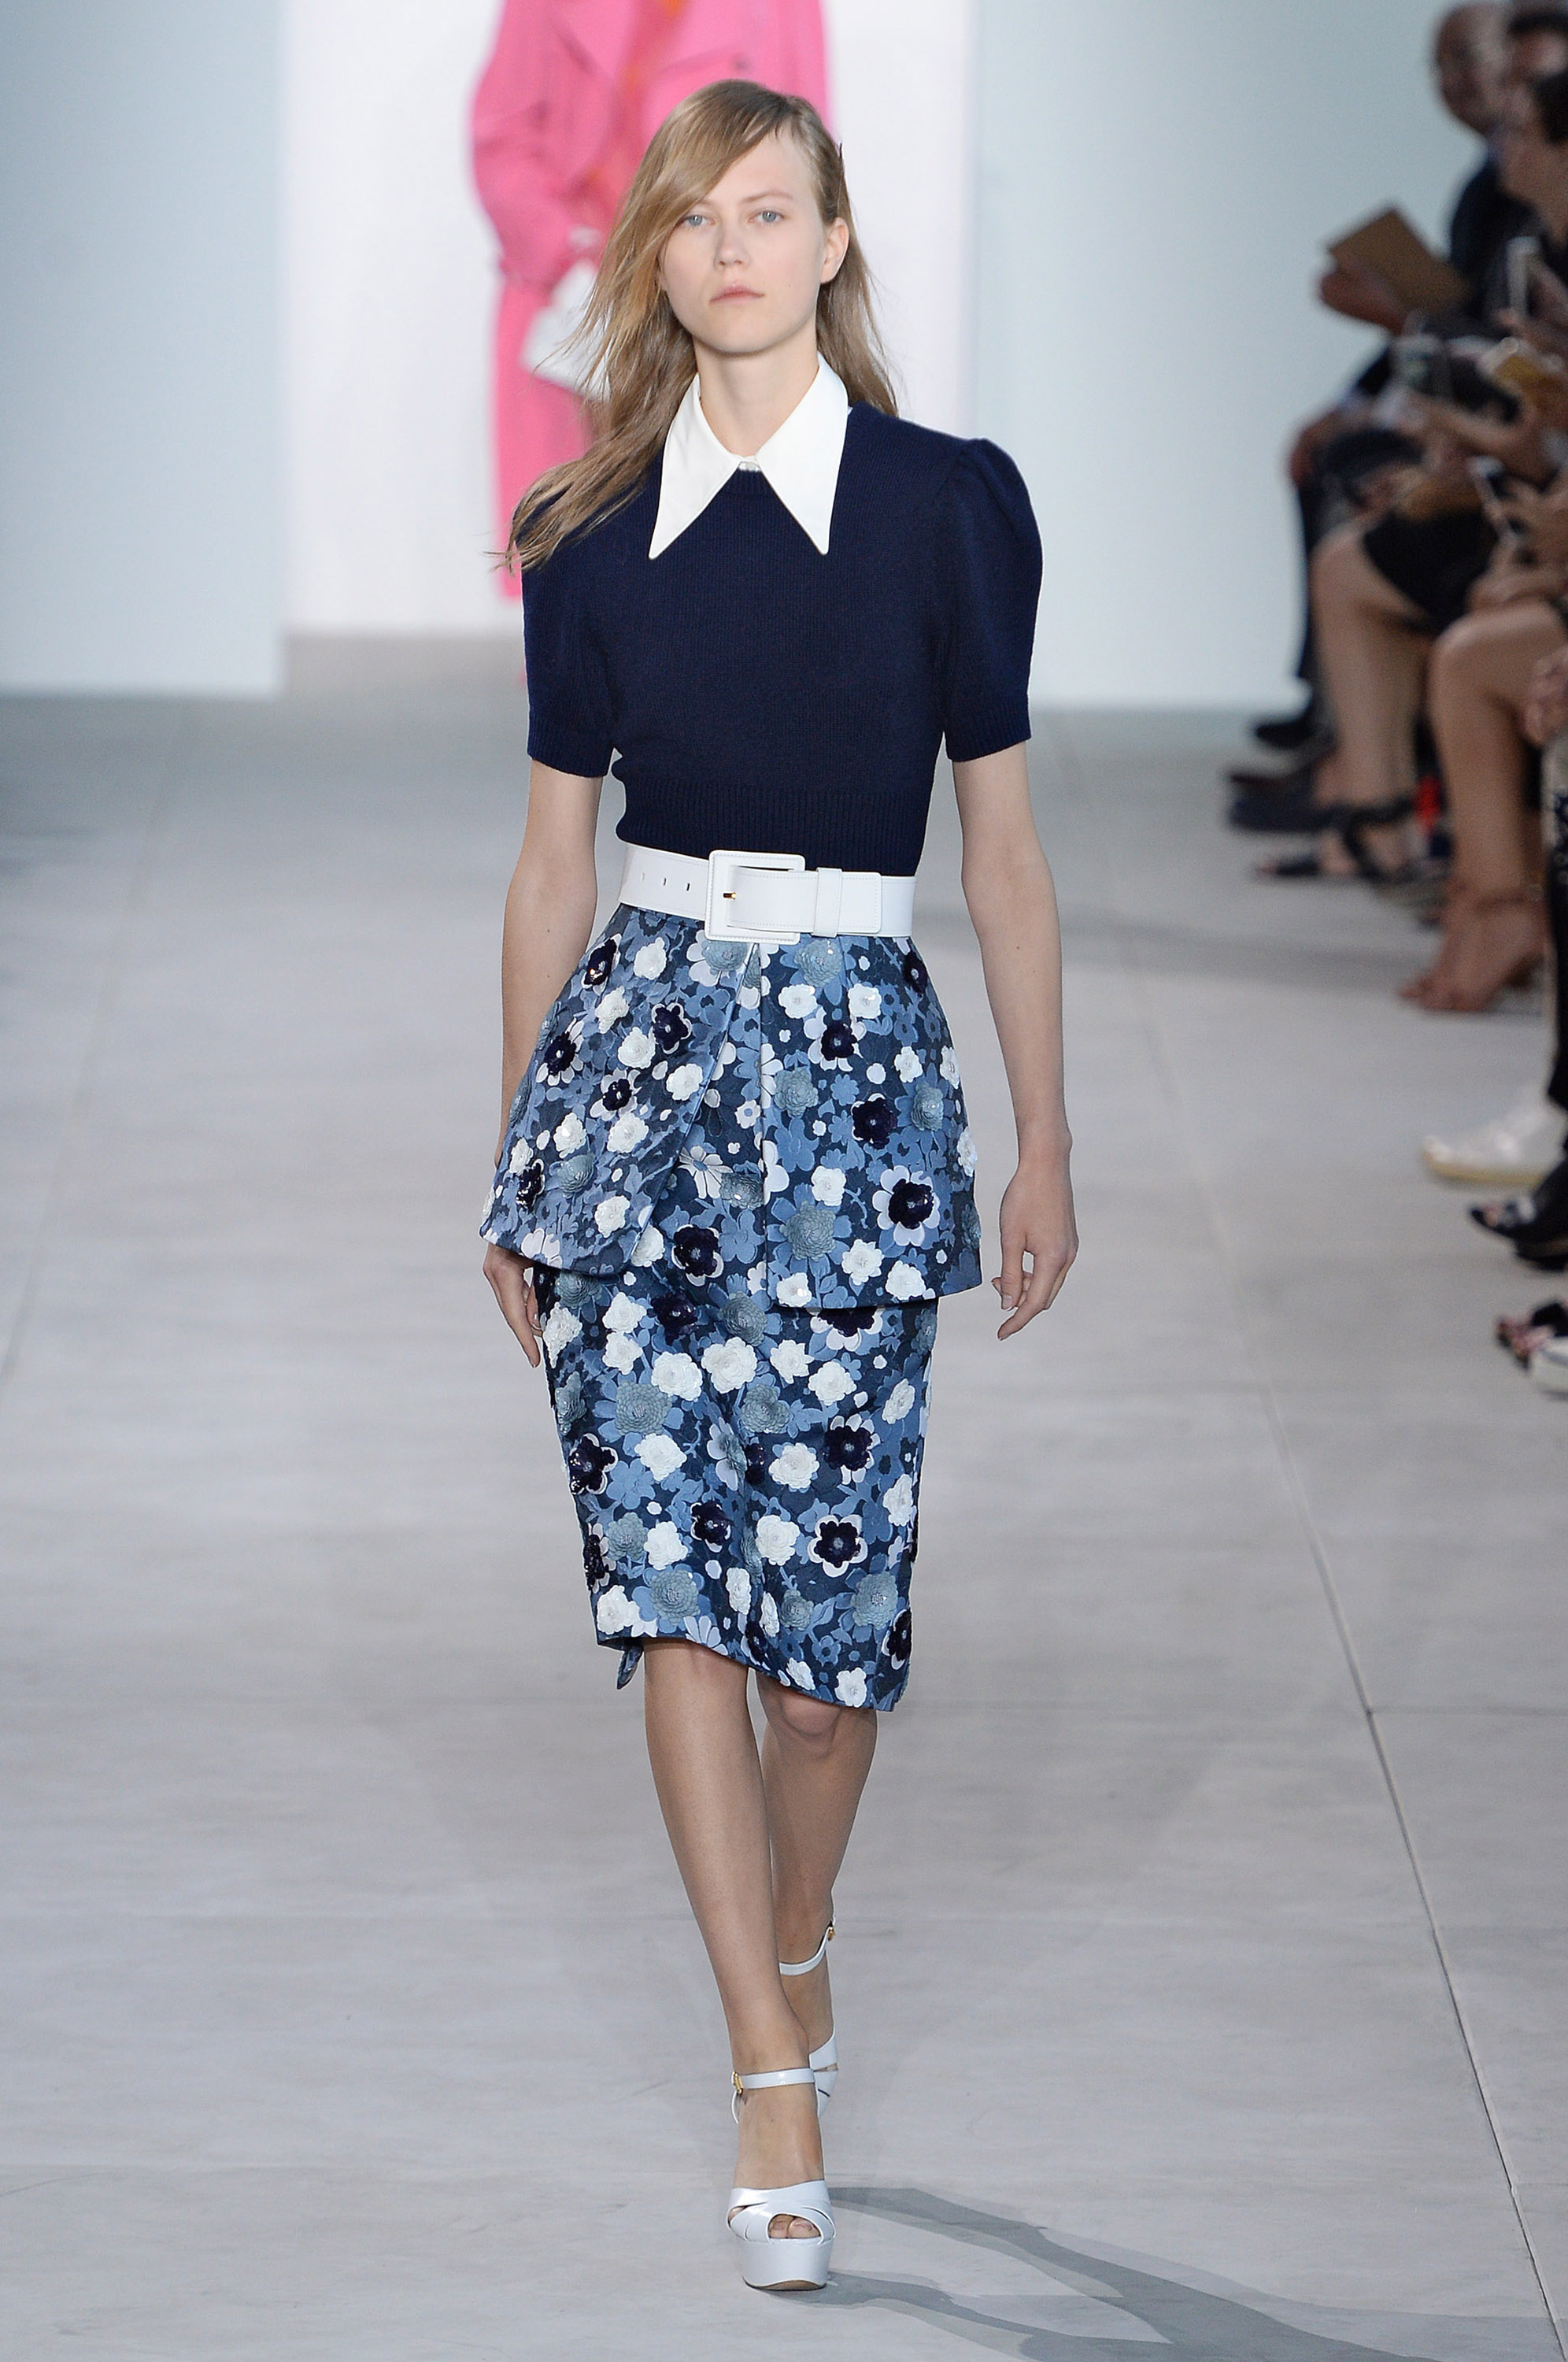 Michael Kors - Runway RTW - Spring 2017 - New York Fashion Week